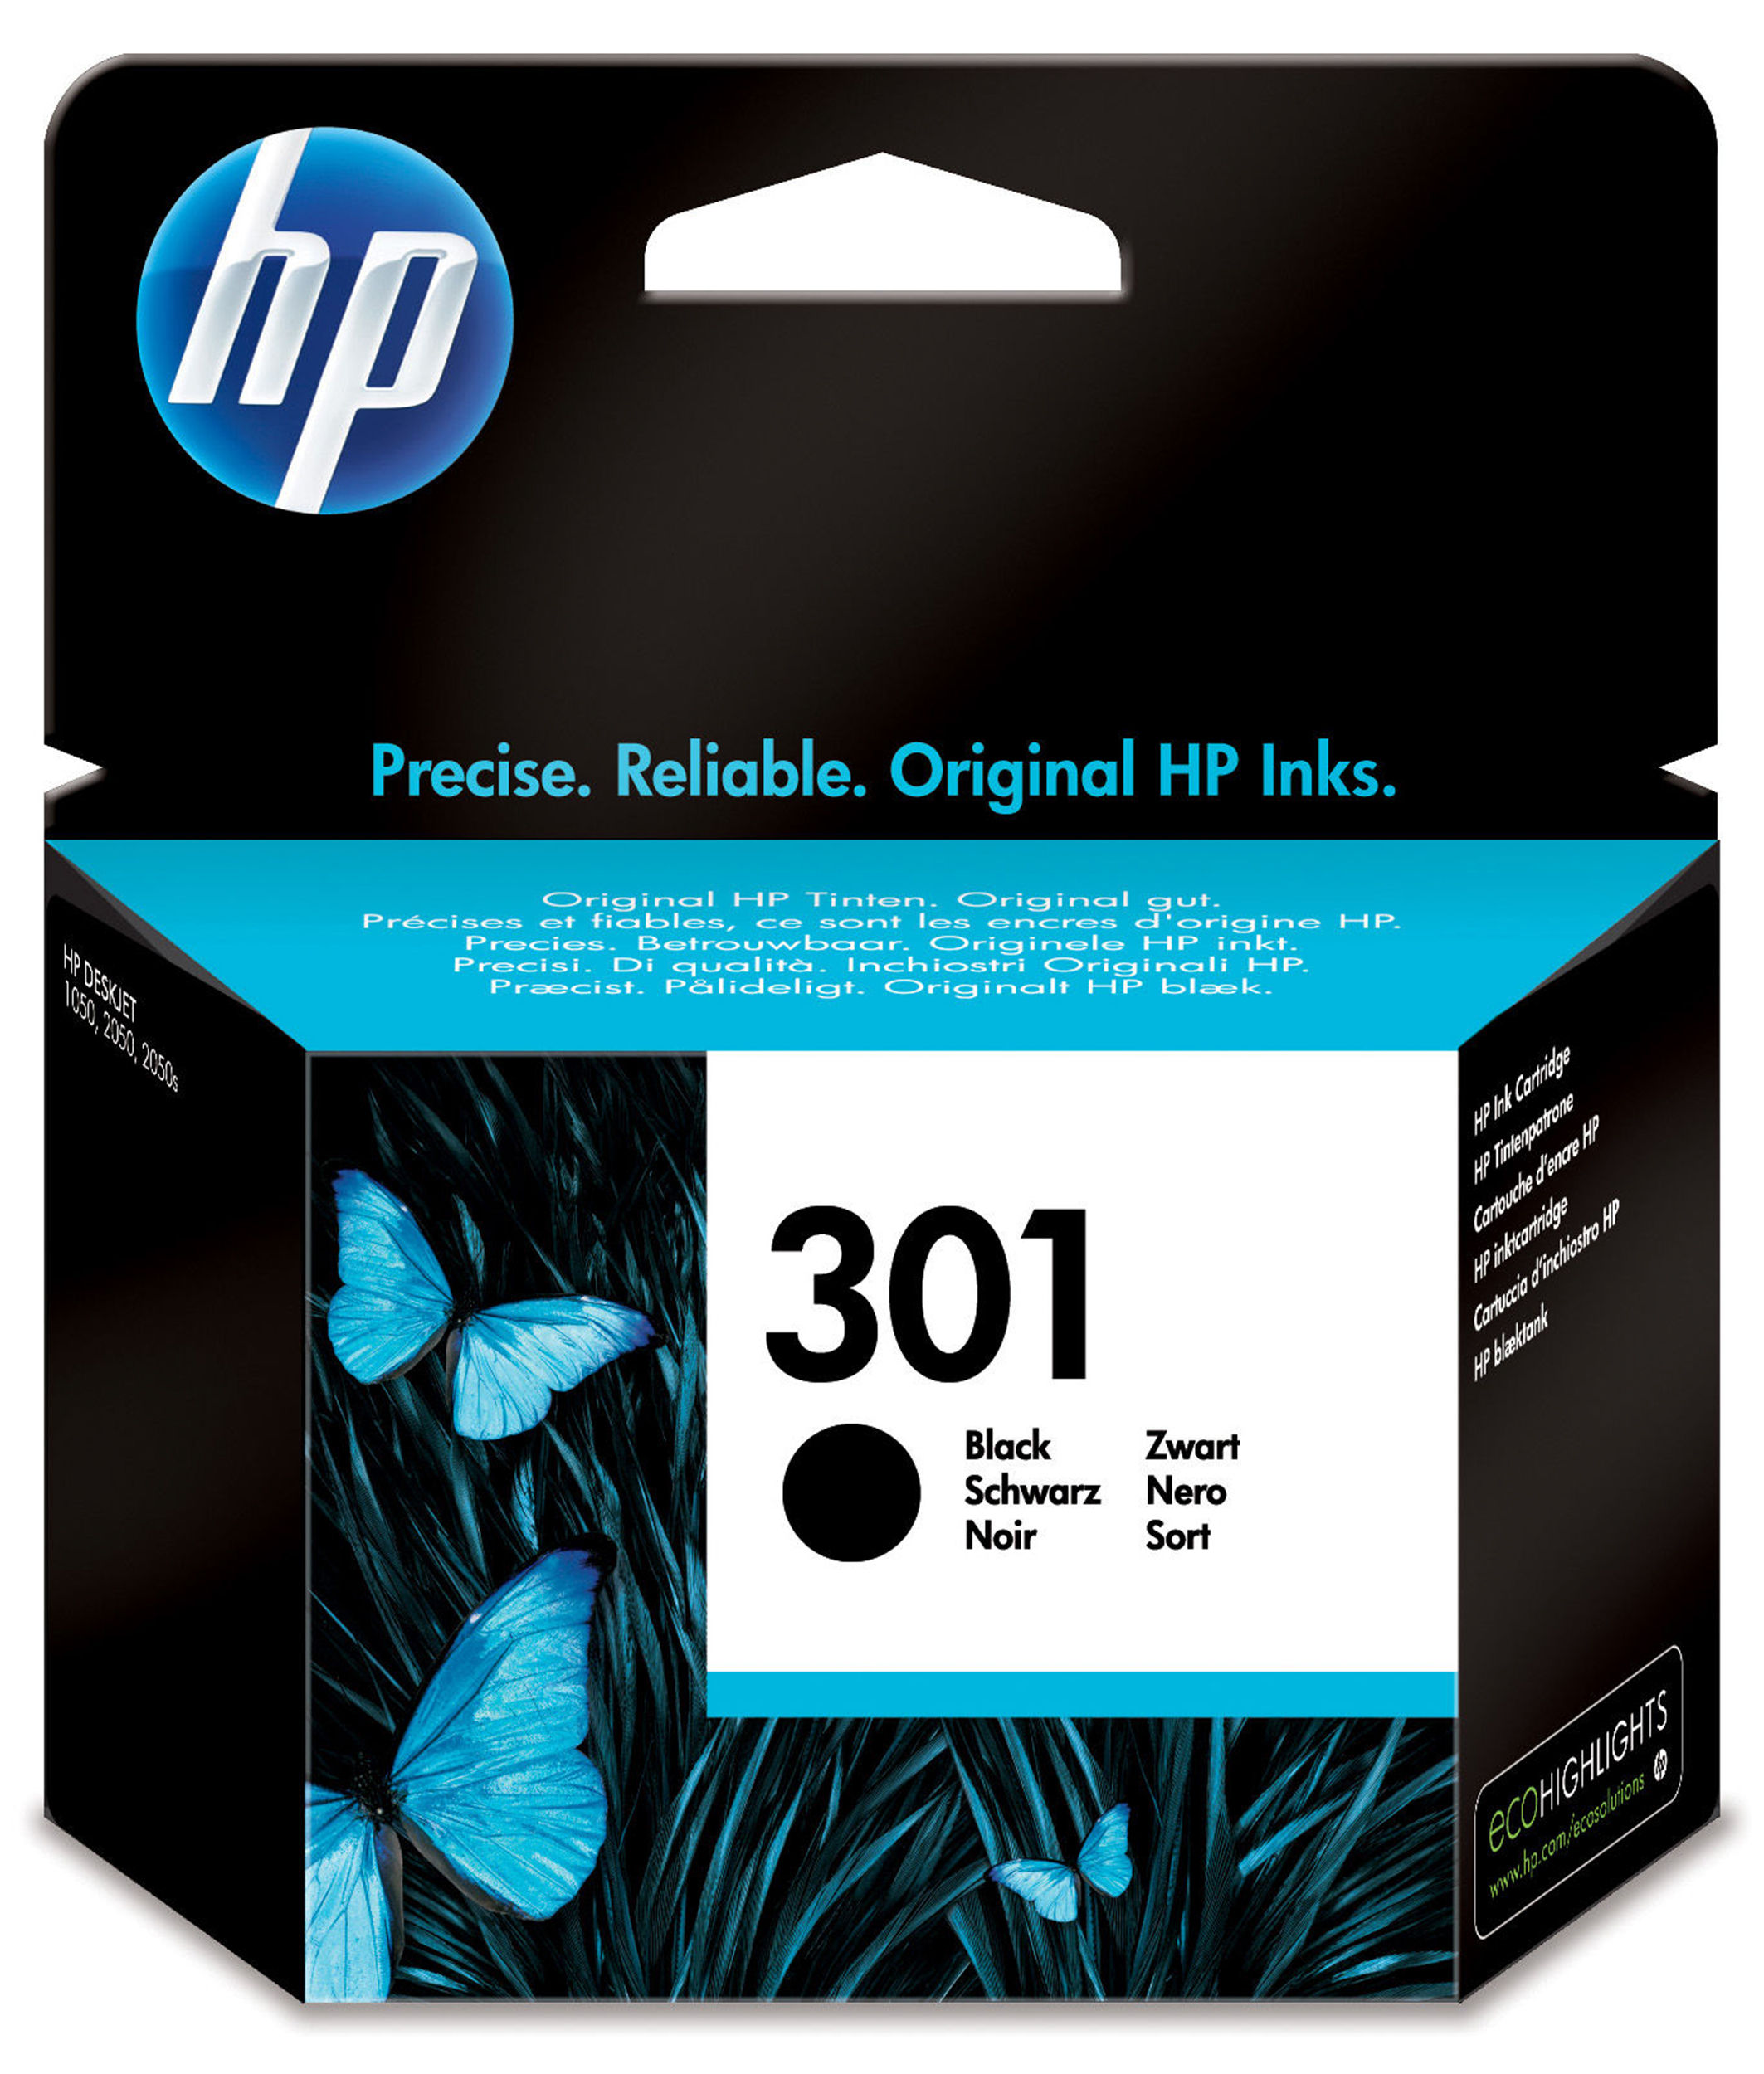 Hp - Inkjet Supply (pl1n) Hvs    301 Black Ink Cartridge             .                                   Ch561ee#uus